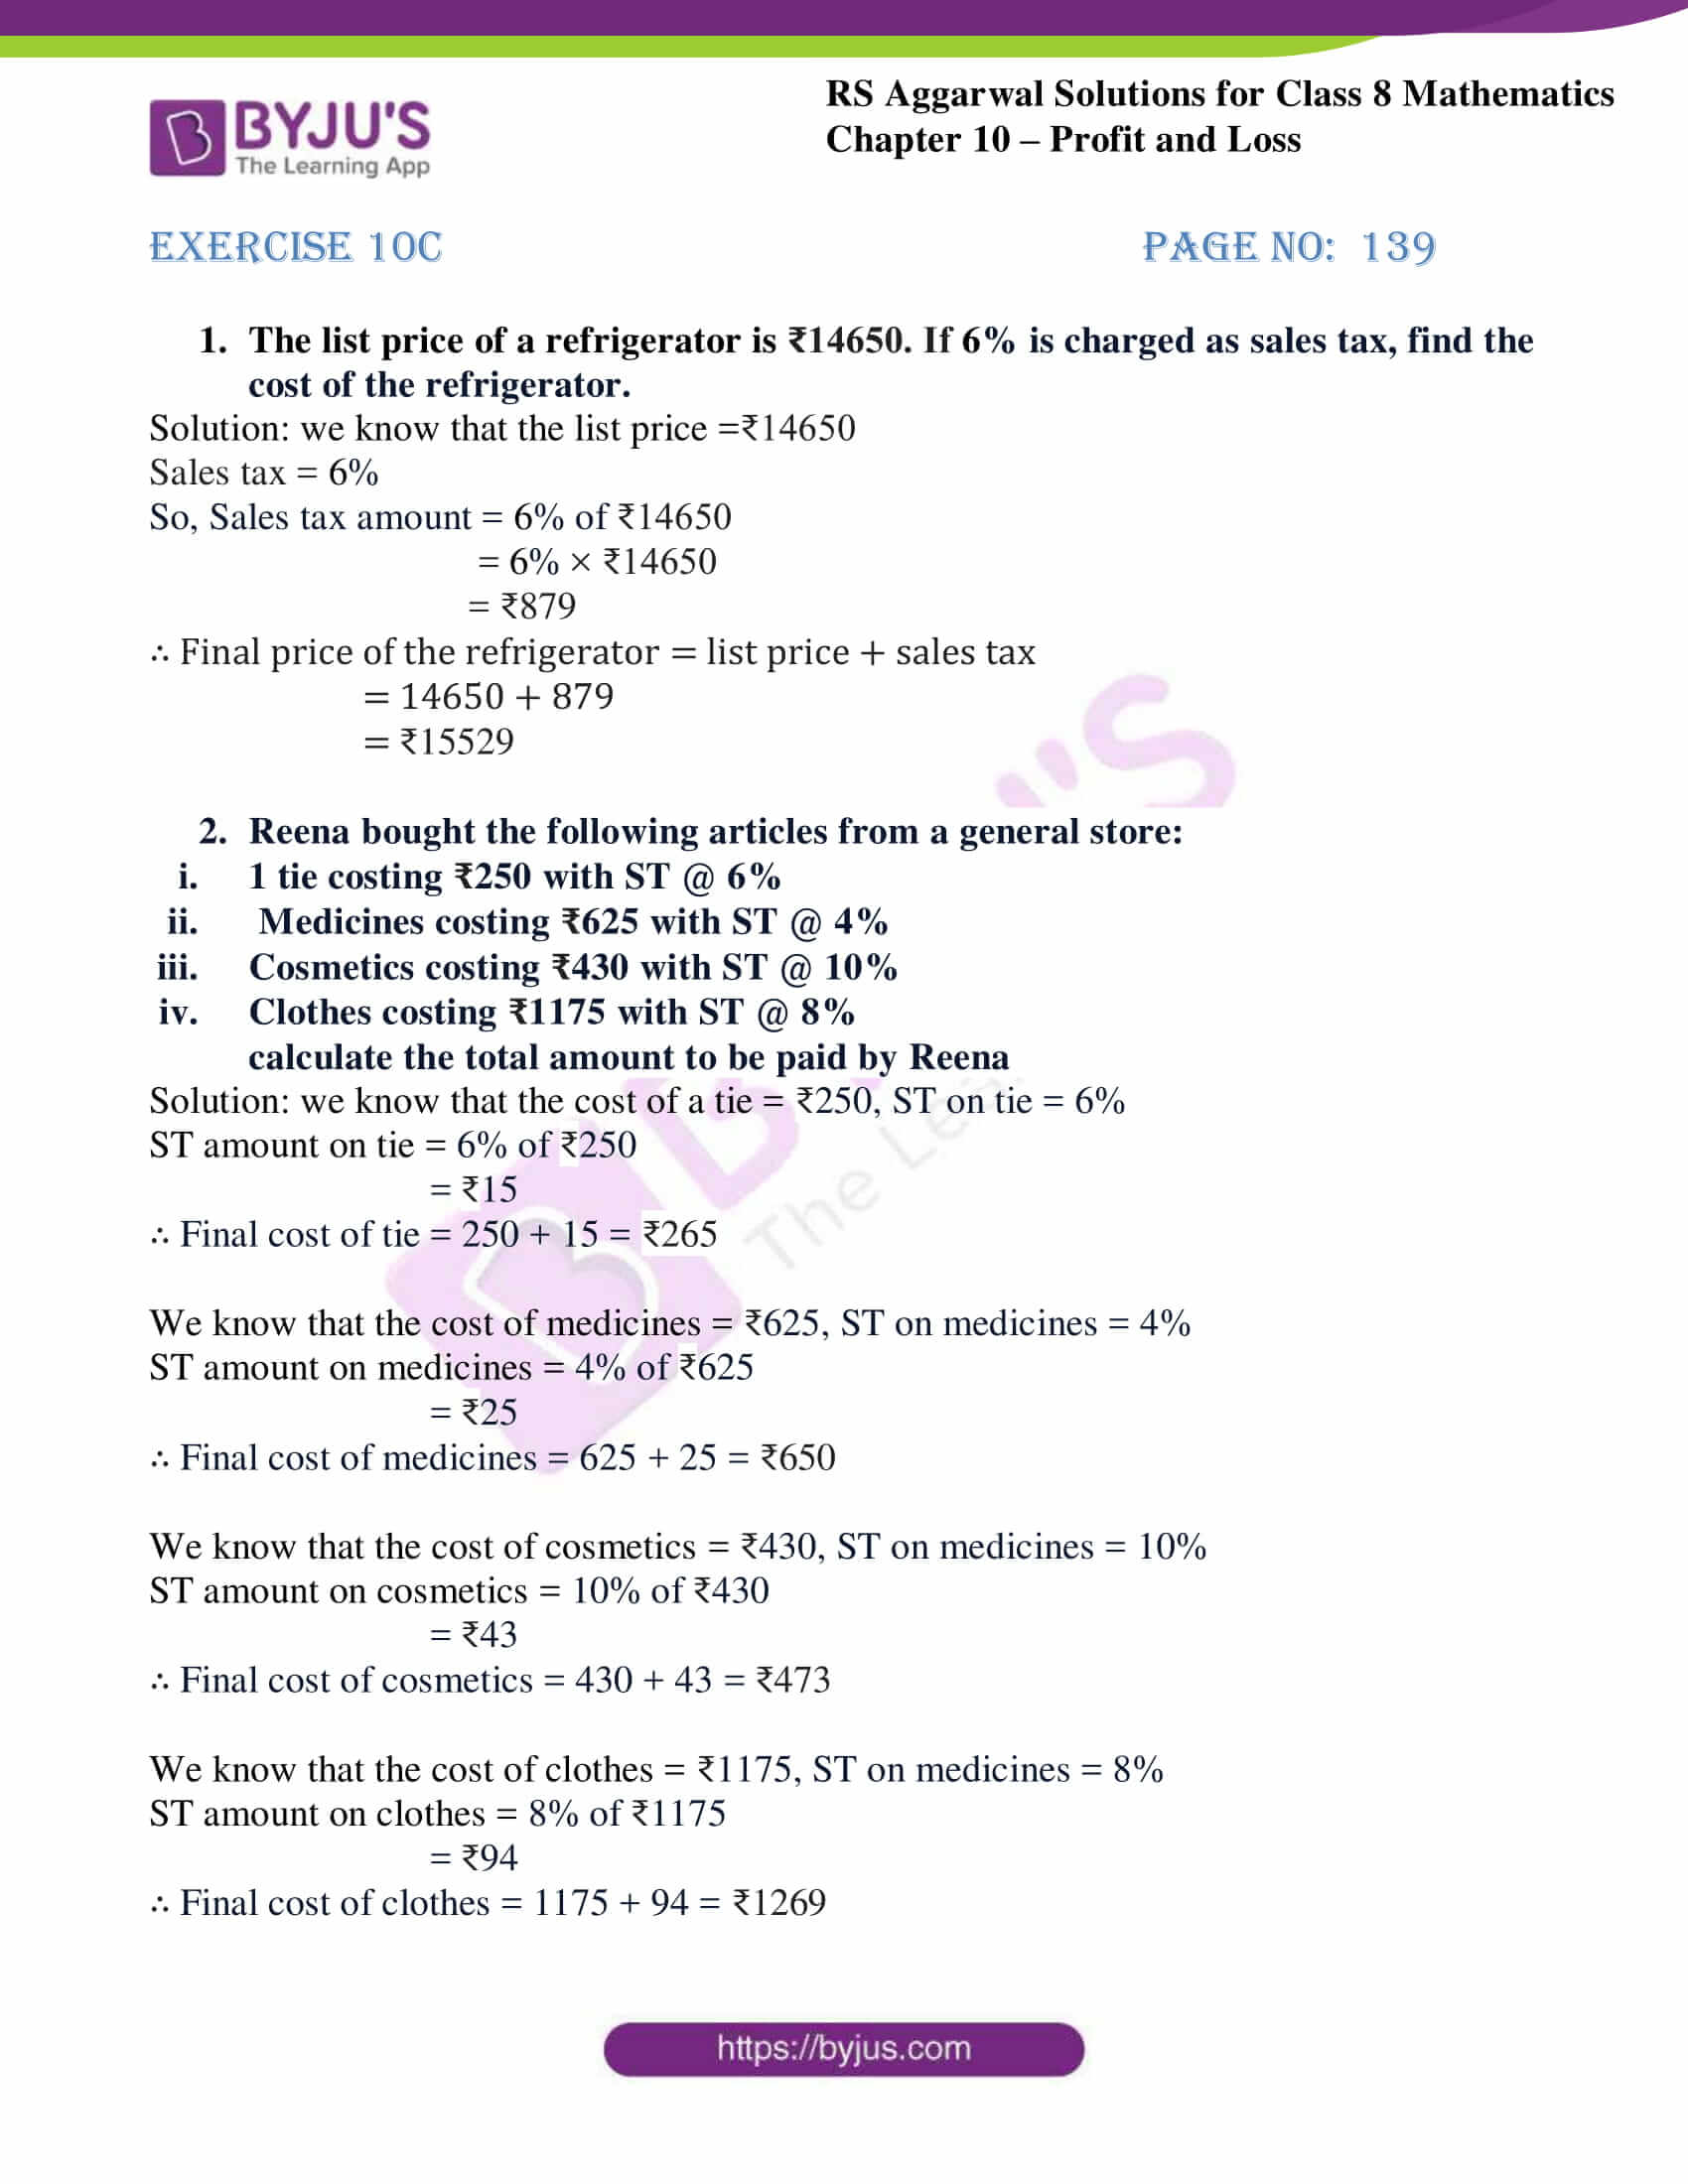 rs aggarwal solutions class 8 maths chapter 10c